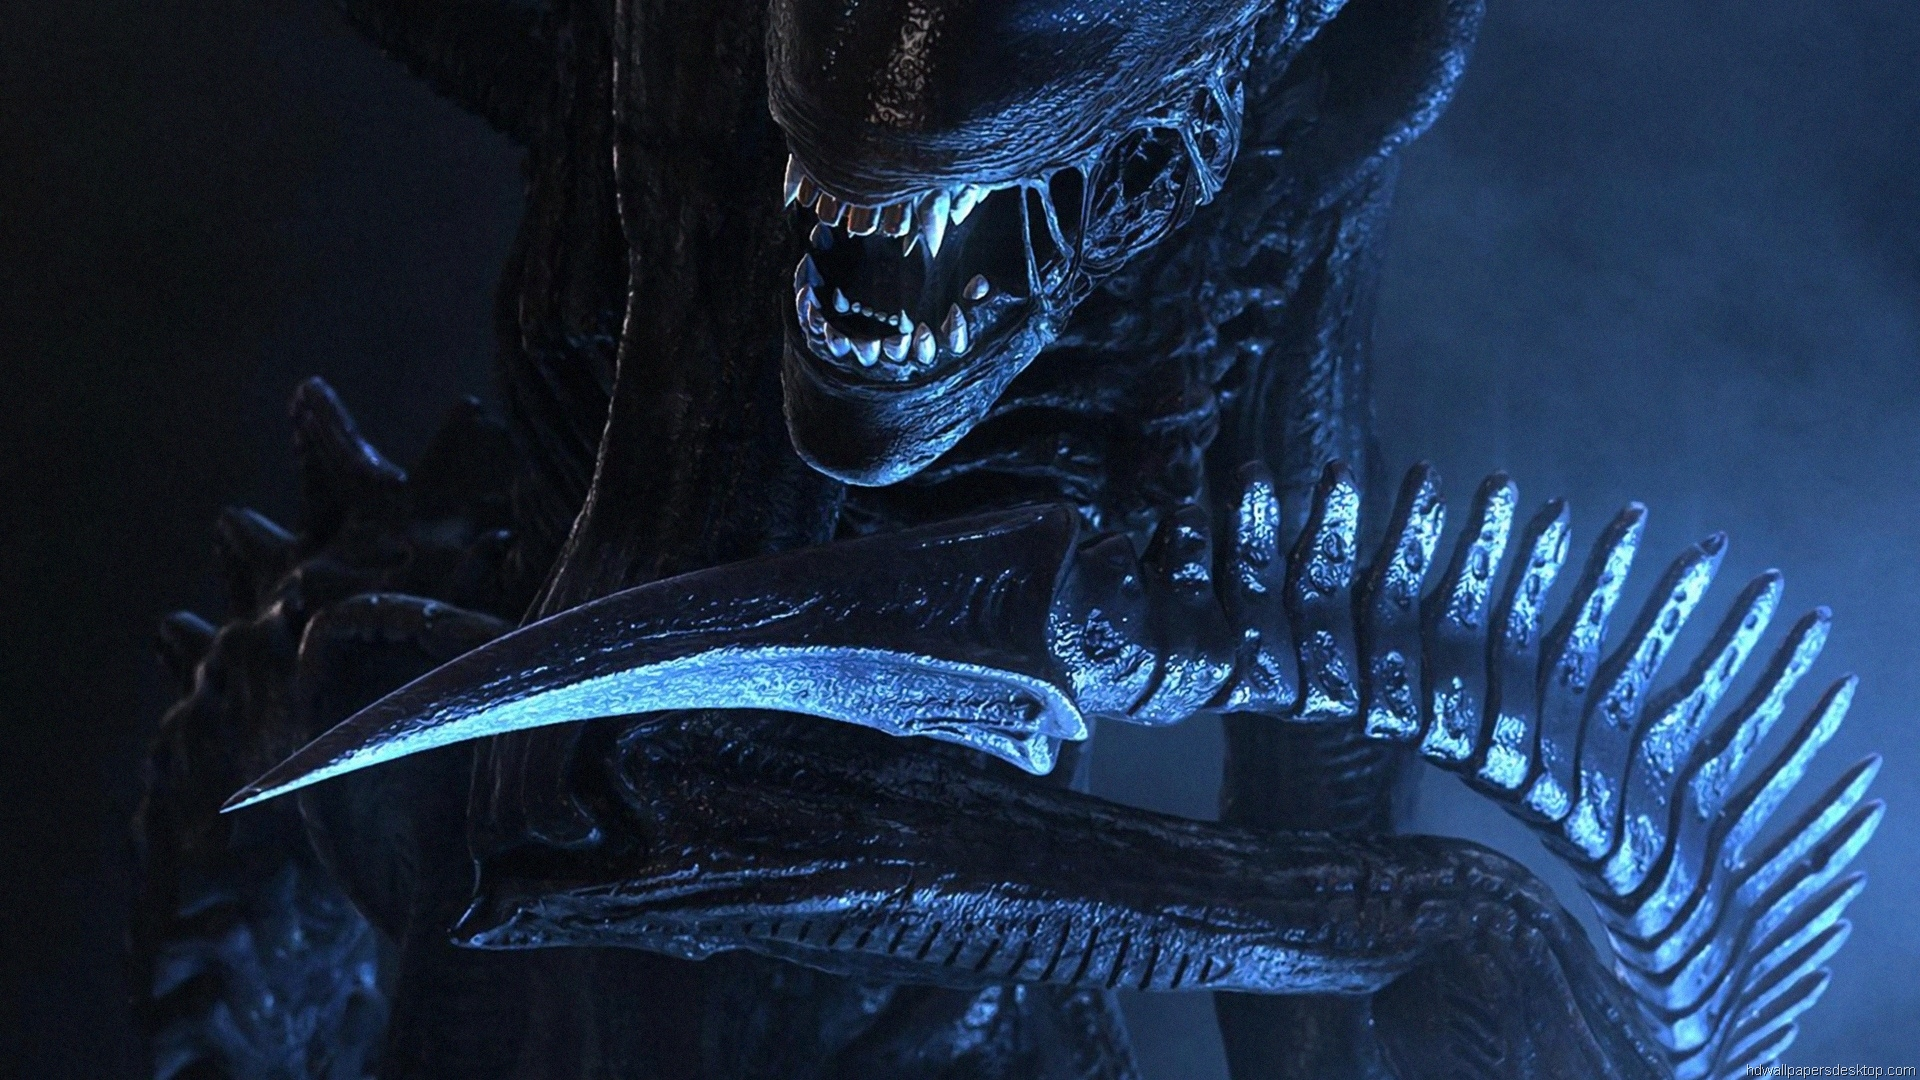 Movie HD Wallpapers Full HD 1080p Movies Wallpapers 198 aliens 1920x1080